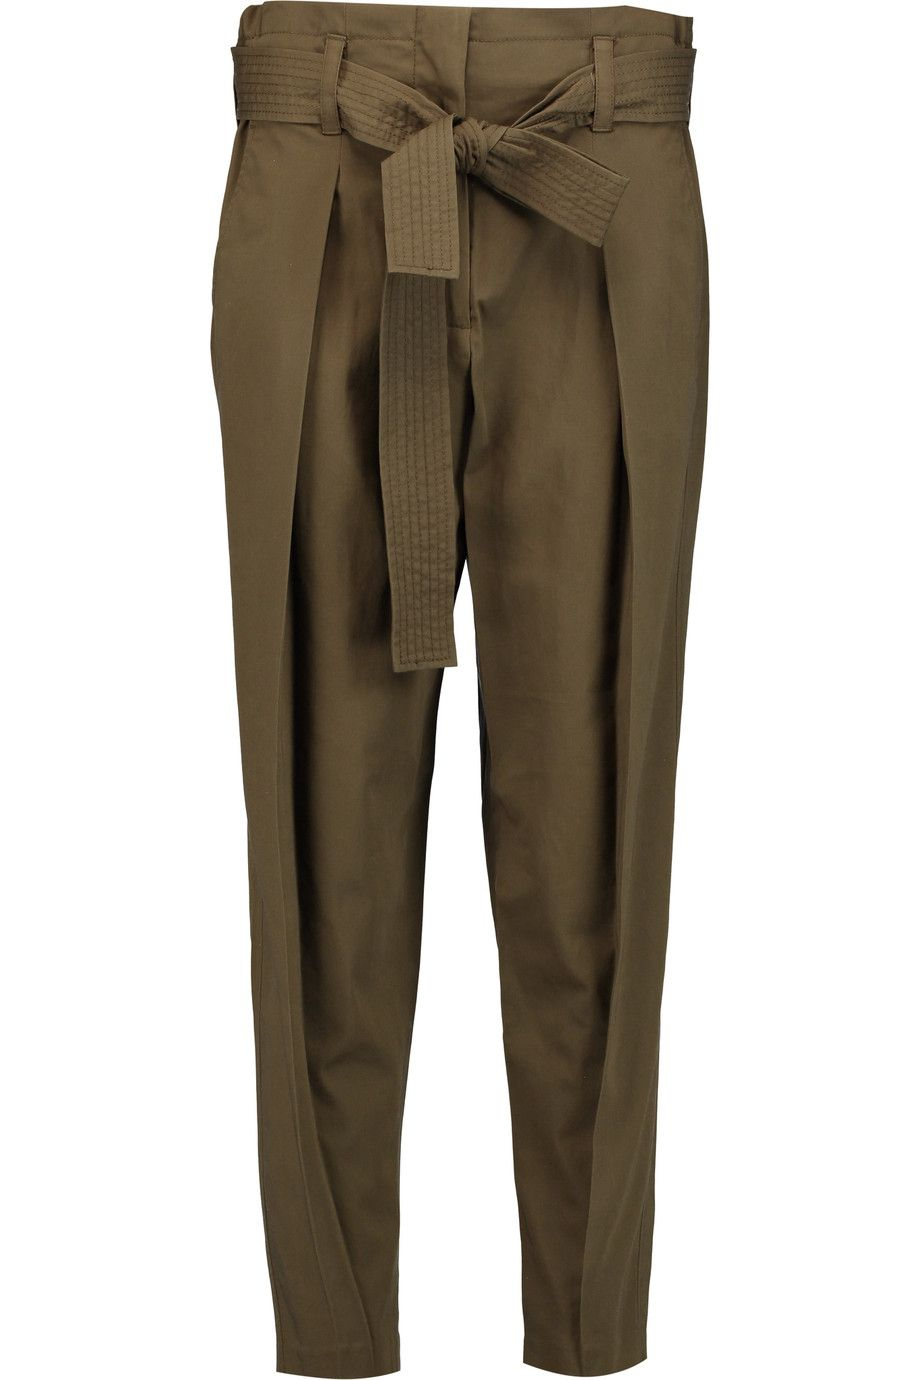 Shop on-sale 3.1 Phillip Lim Pleated cotton tapered pants. Browse other  discount designer